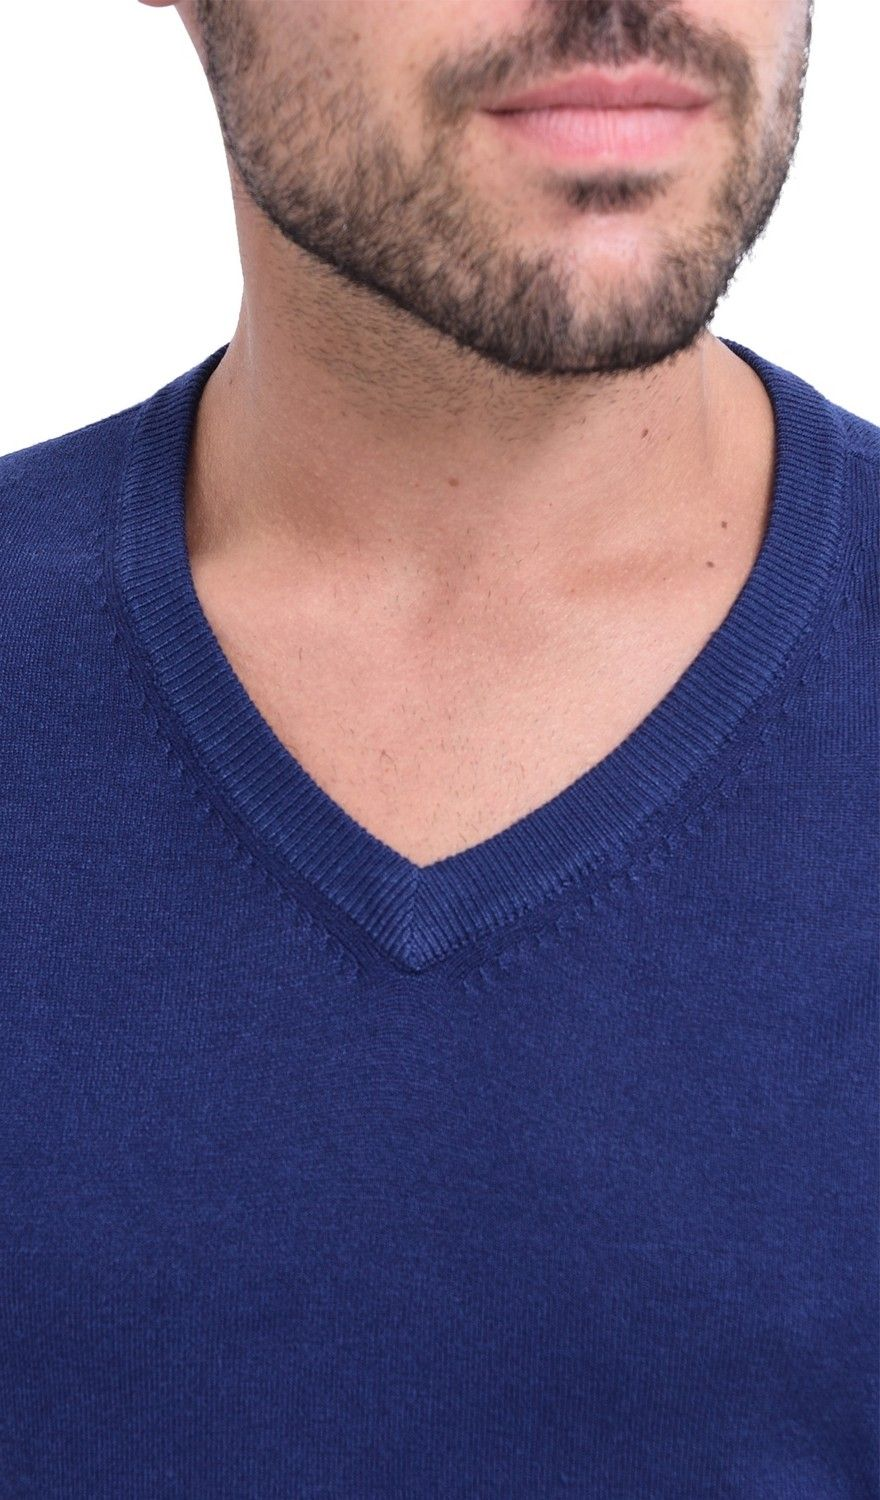 C&JO V-neck Elbow Patch Sweater in Navy